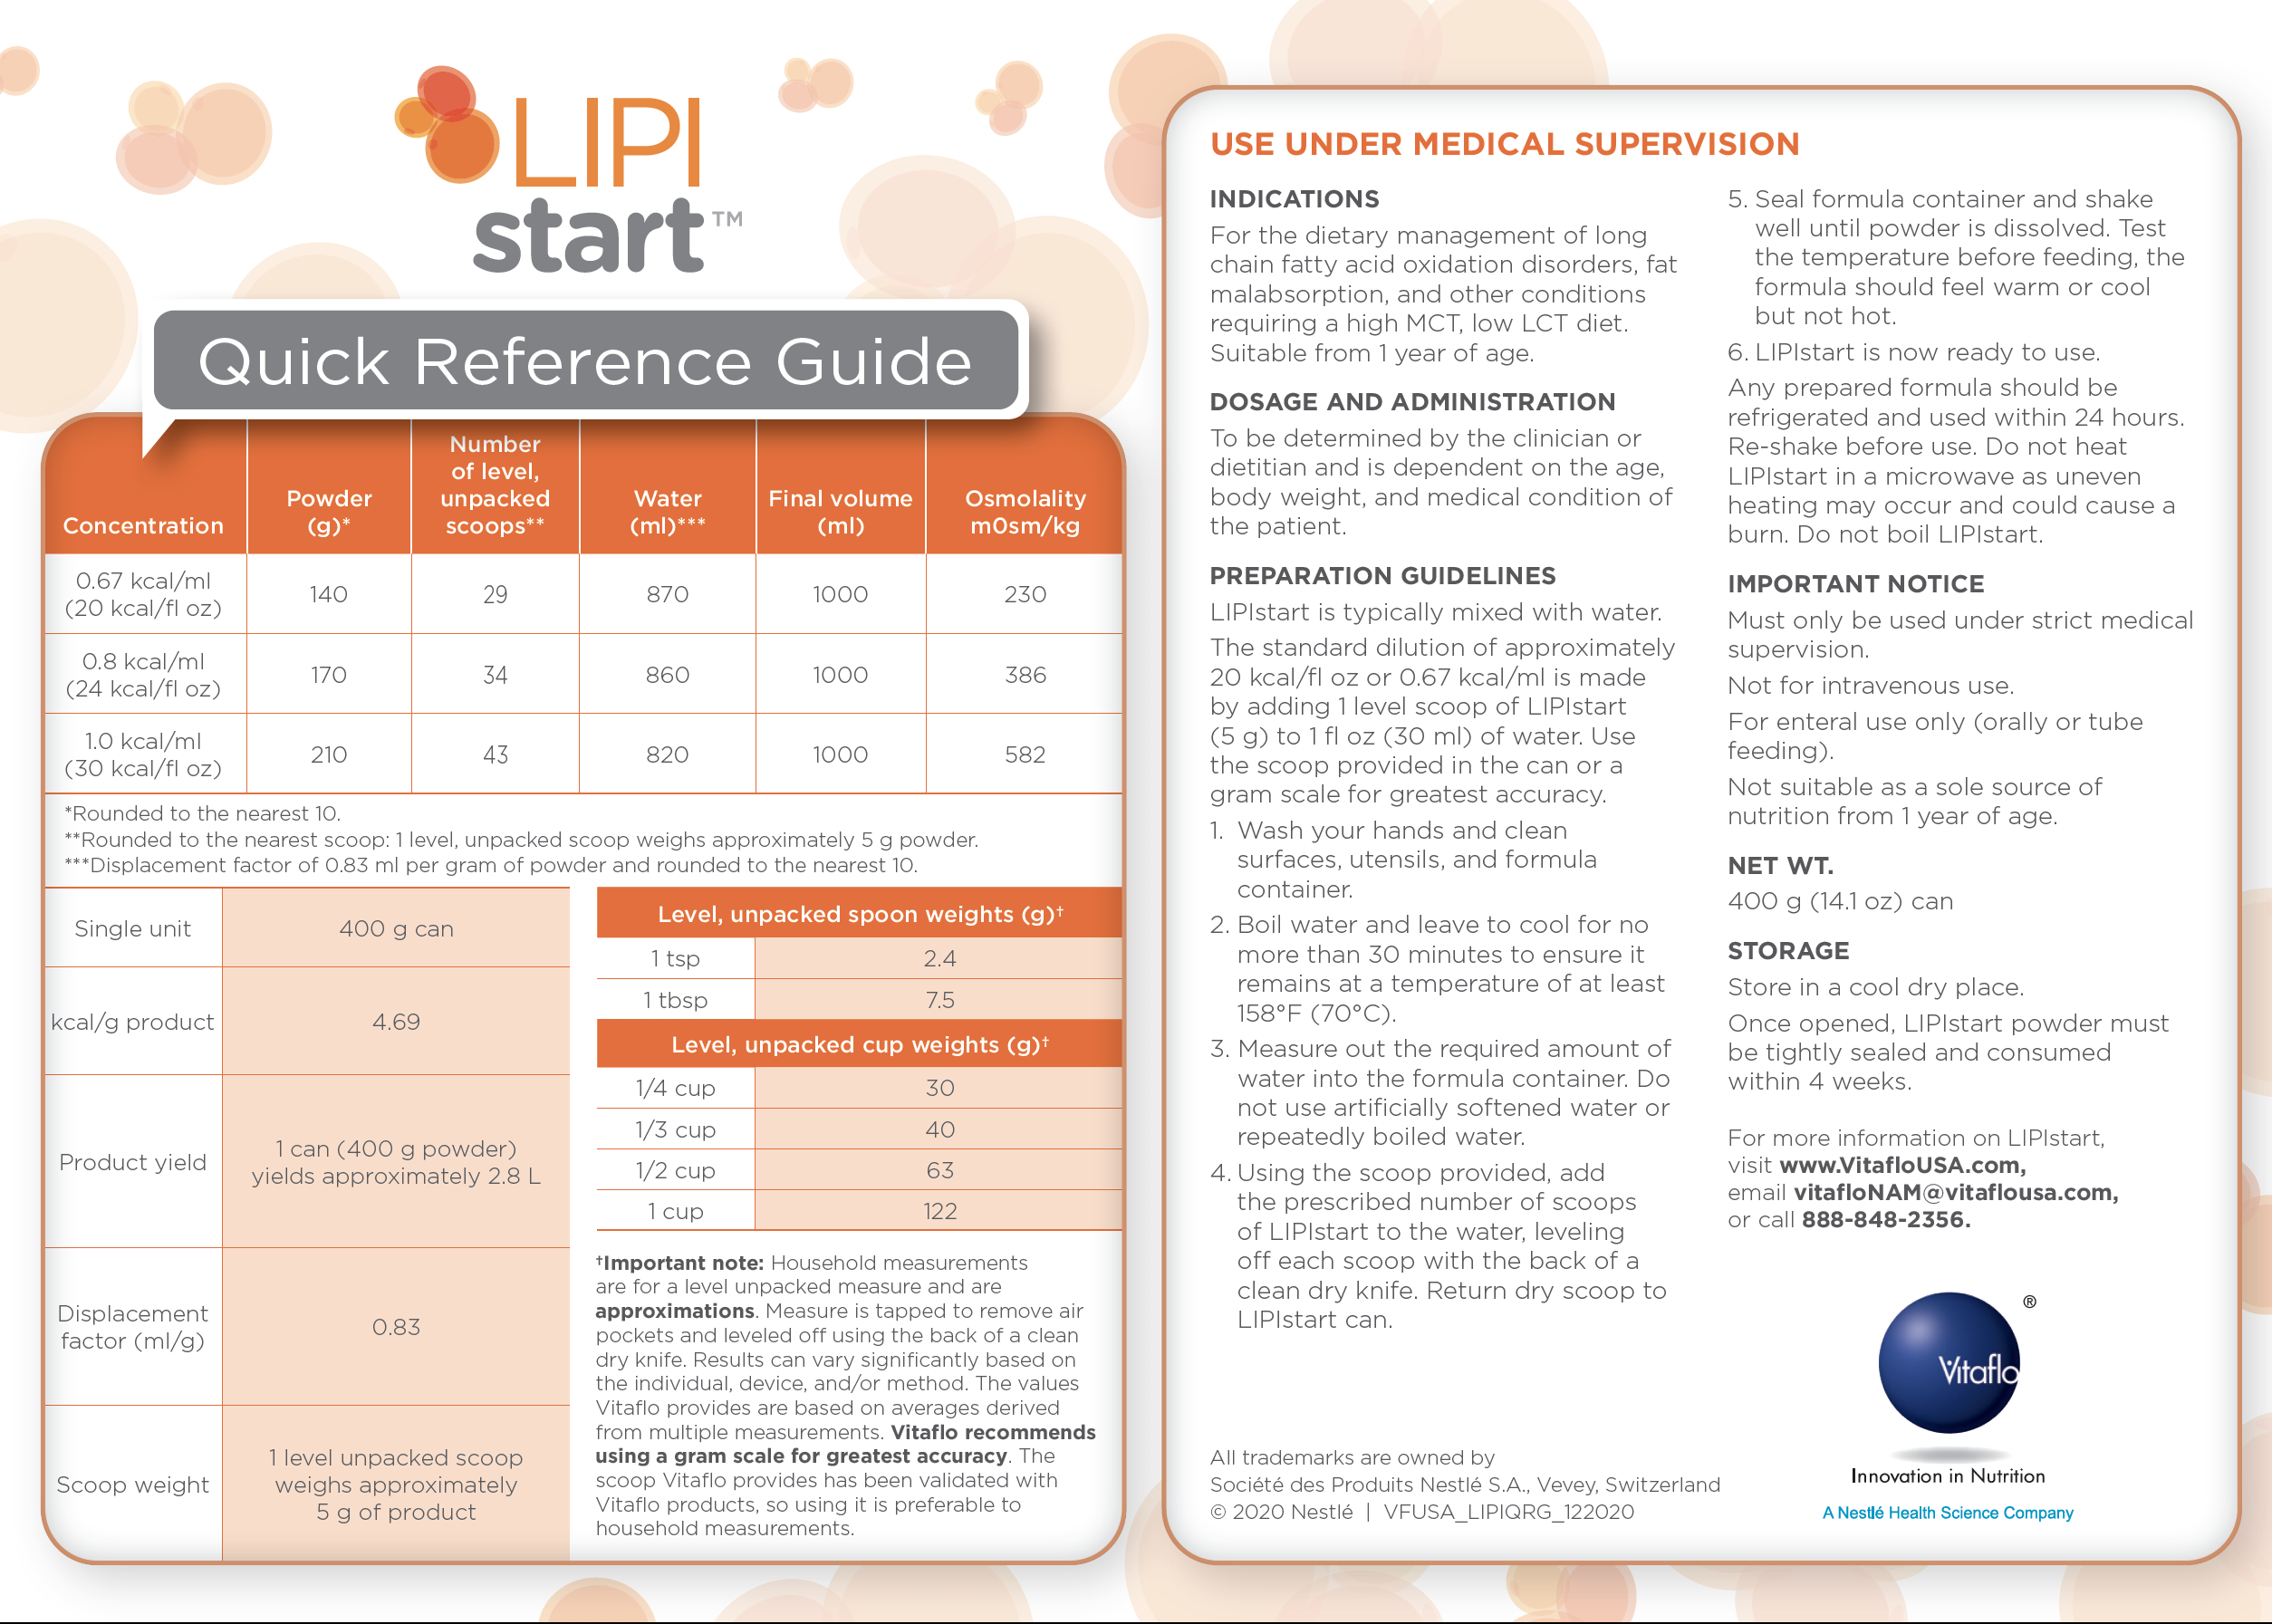 LIPIstart Quick Reference Guide